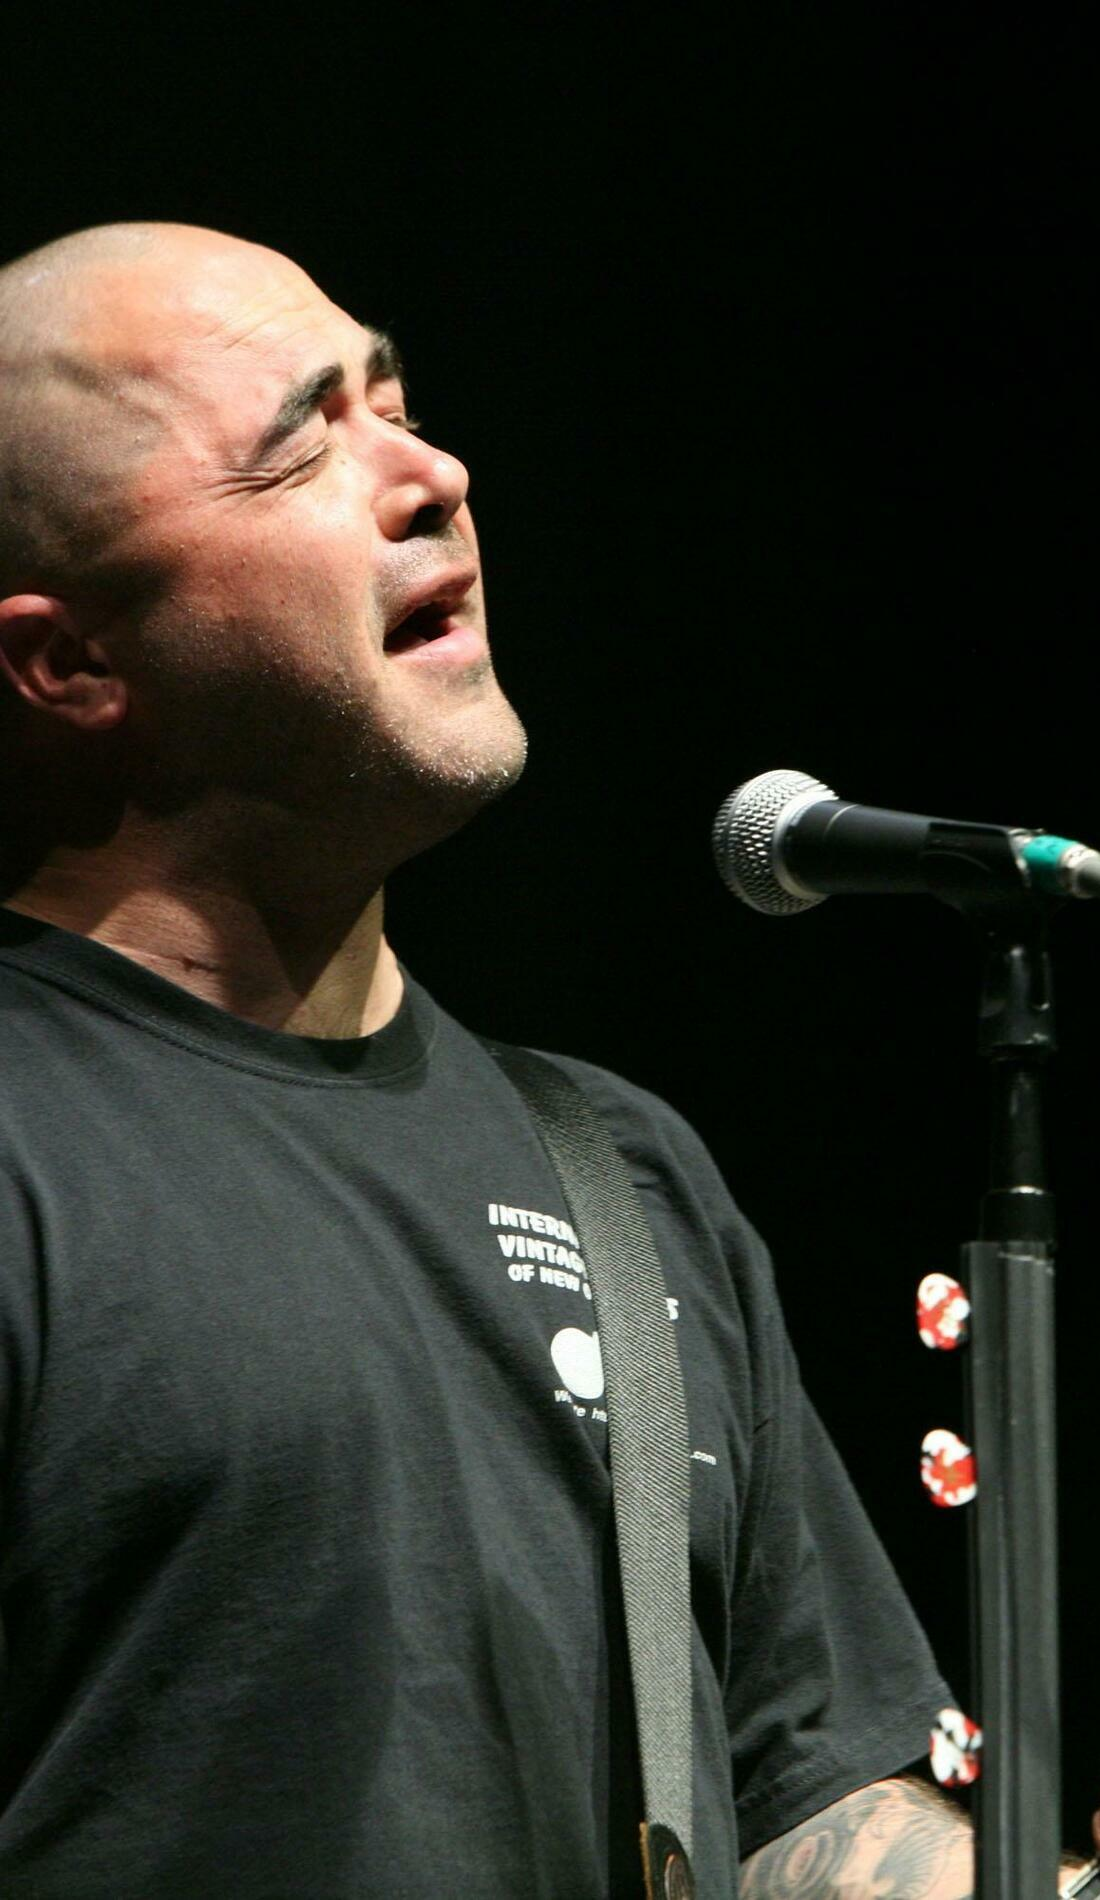 A Staind live event